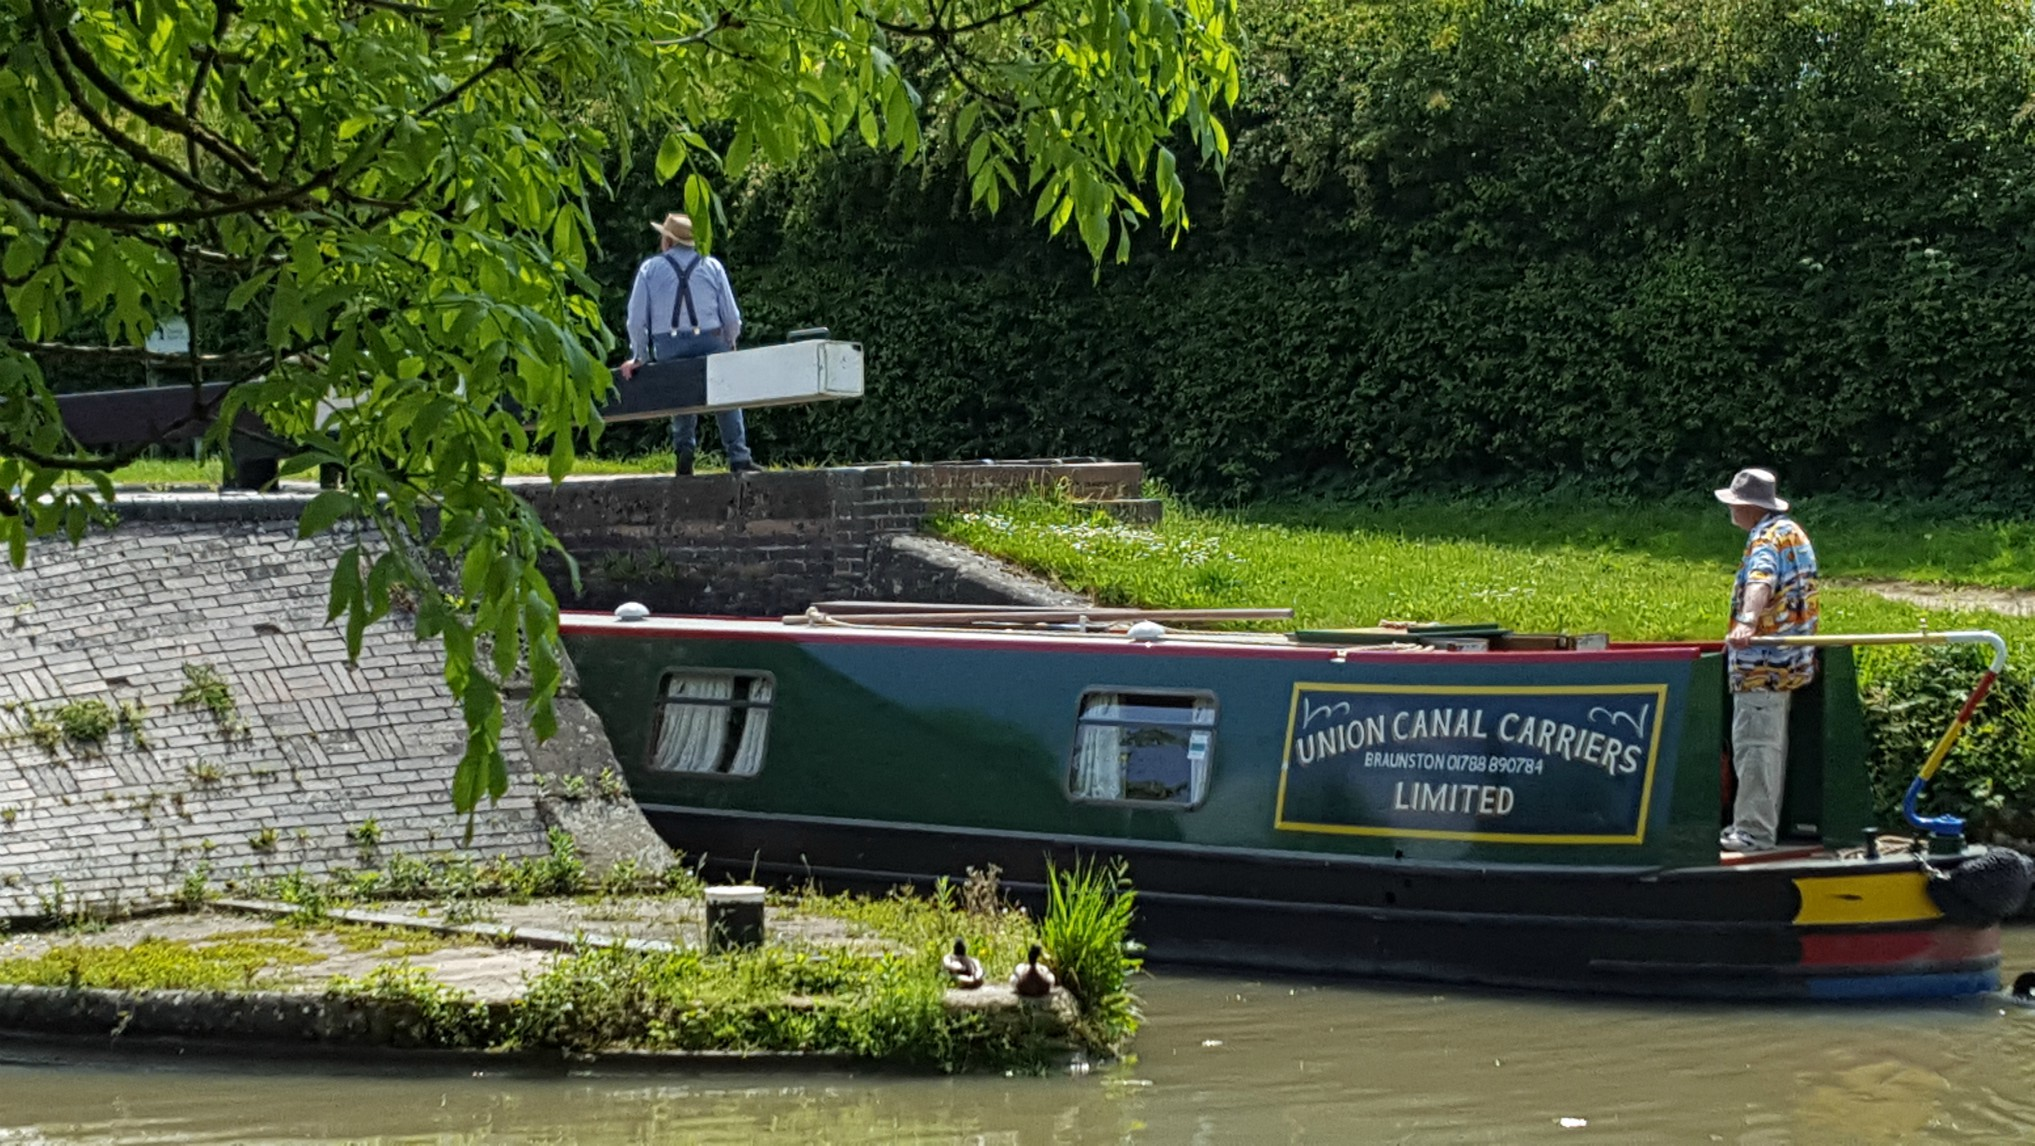 Union Canal Carriers celebrates 50 years afloat